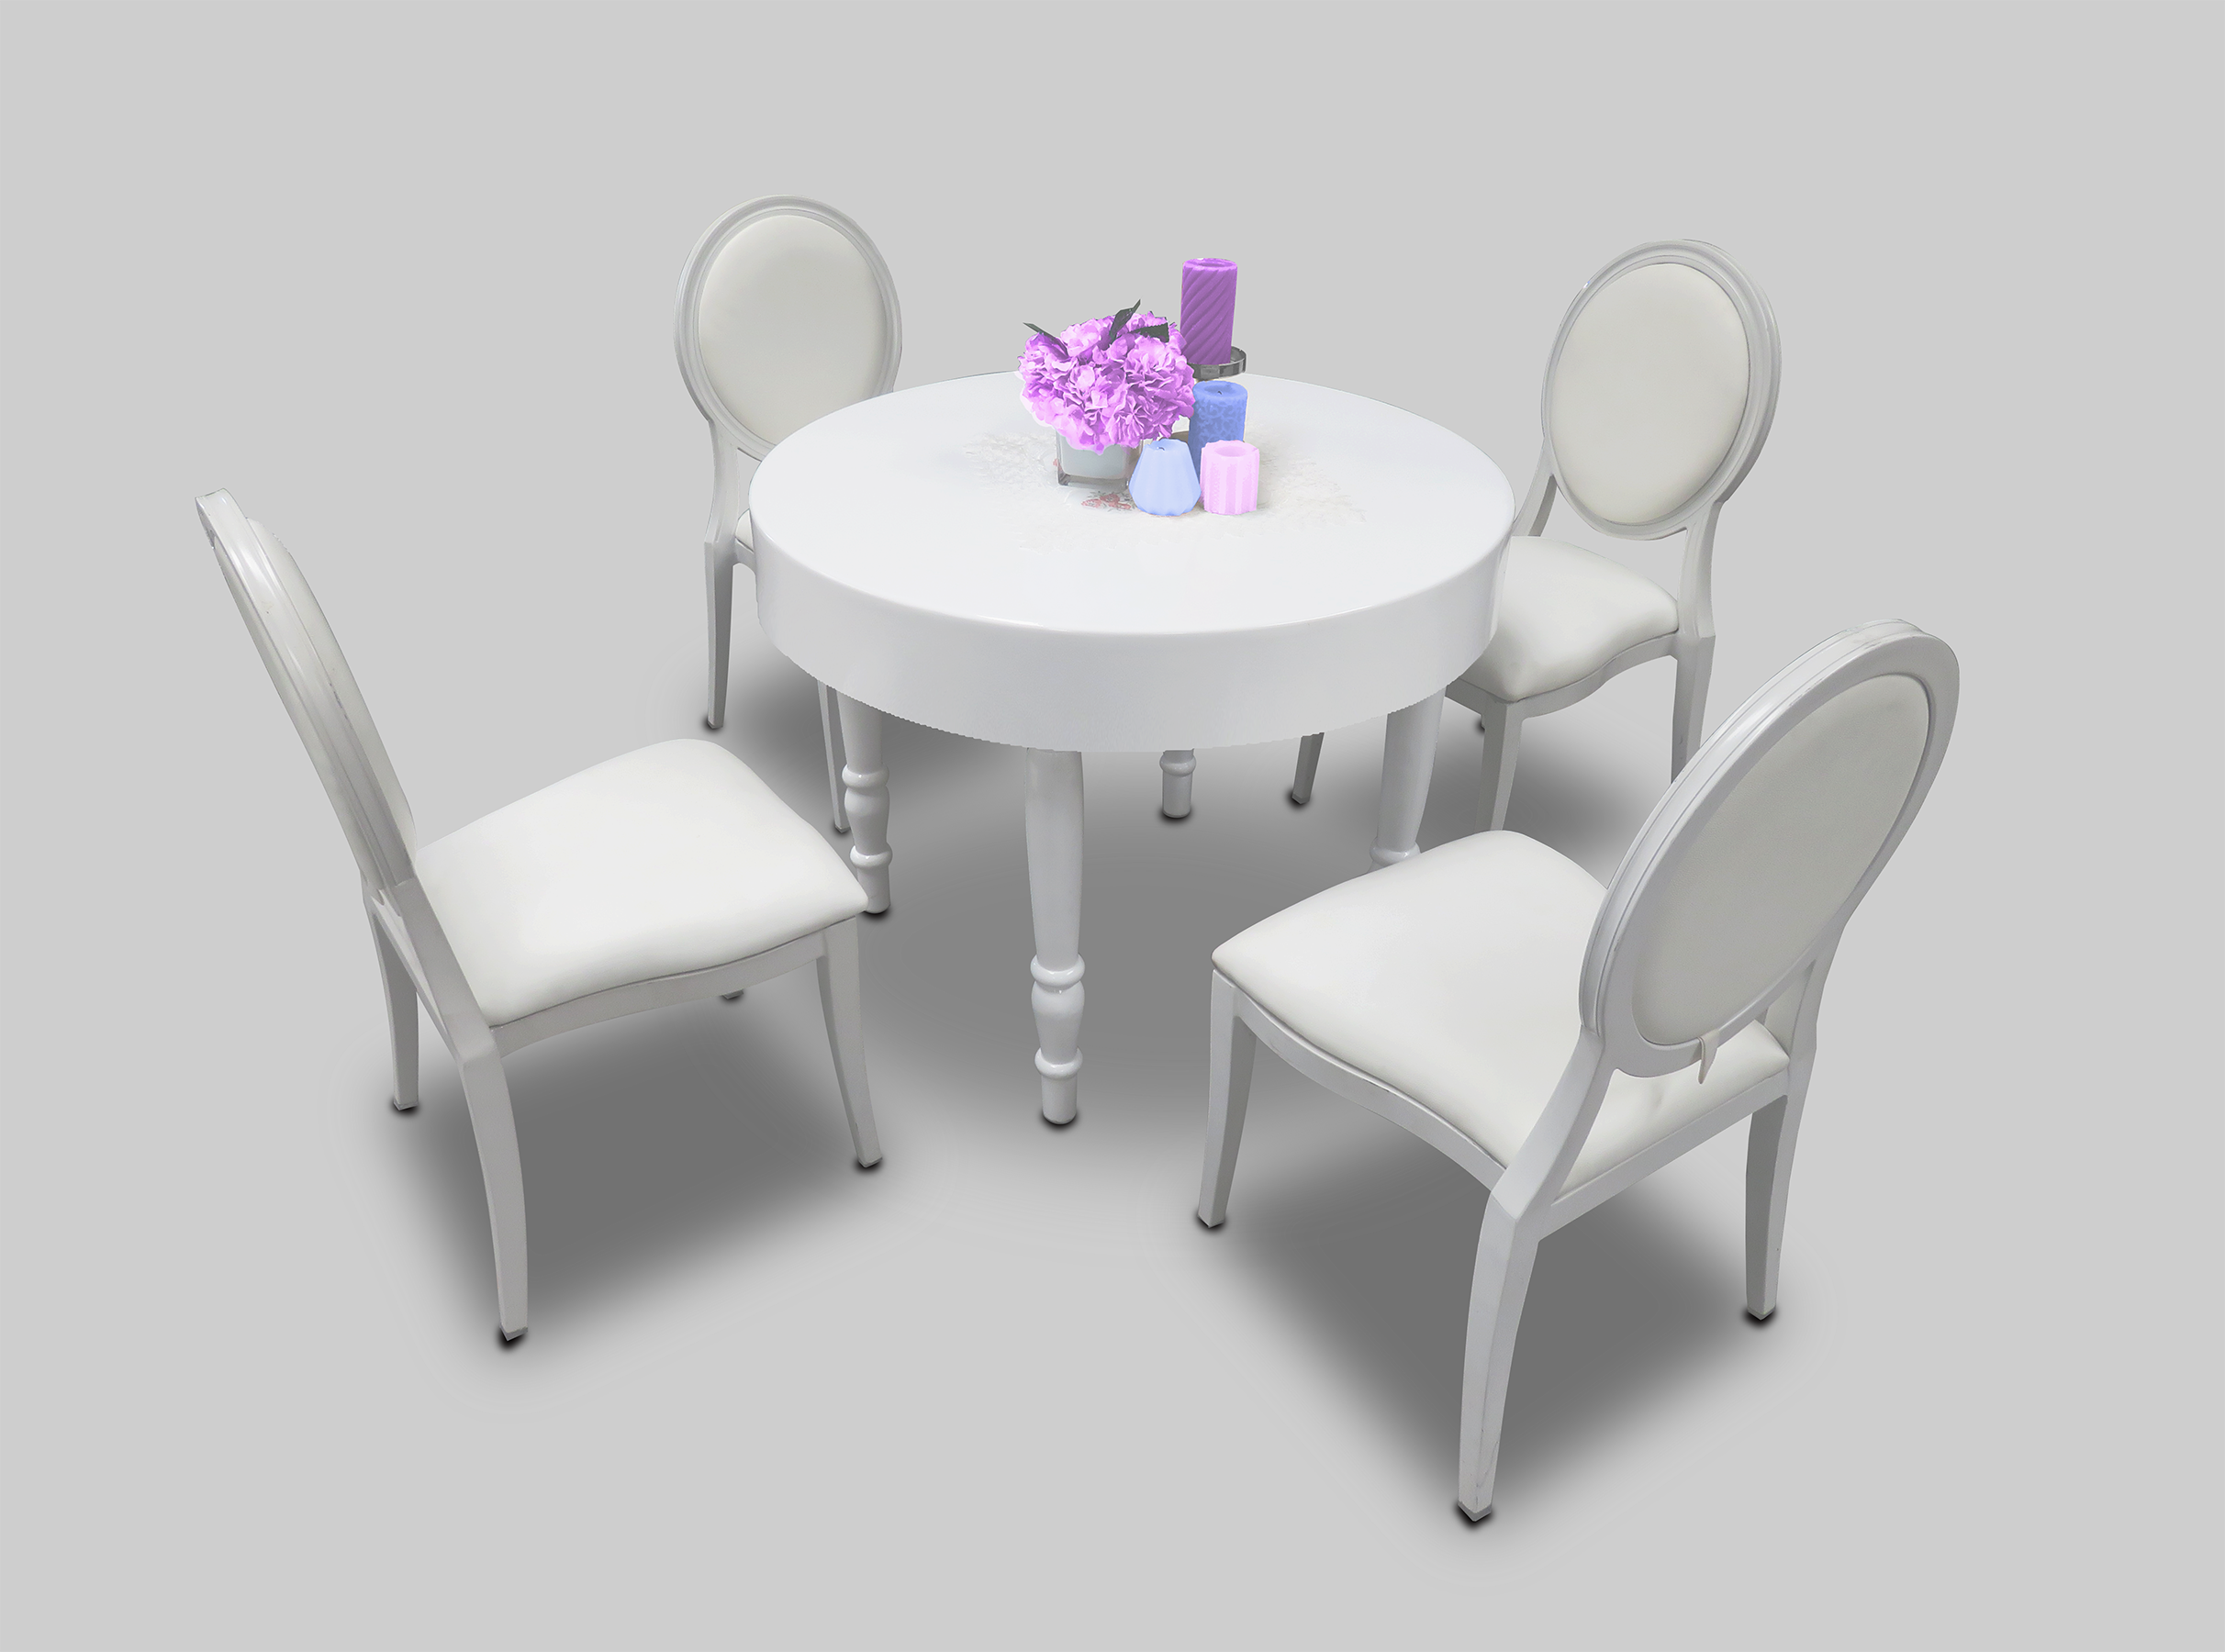 Sofa Set For Sale Abu Dhabi Rent Or Buy Avalon Round White Dining Table Event Rental